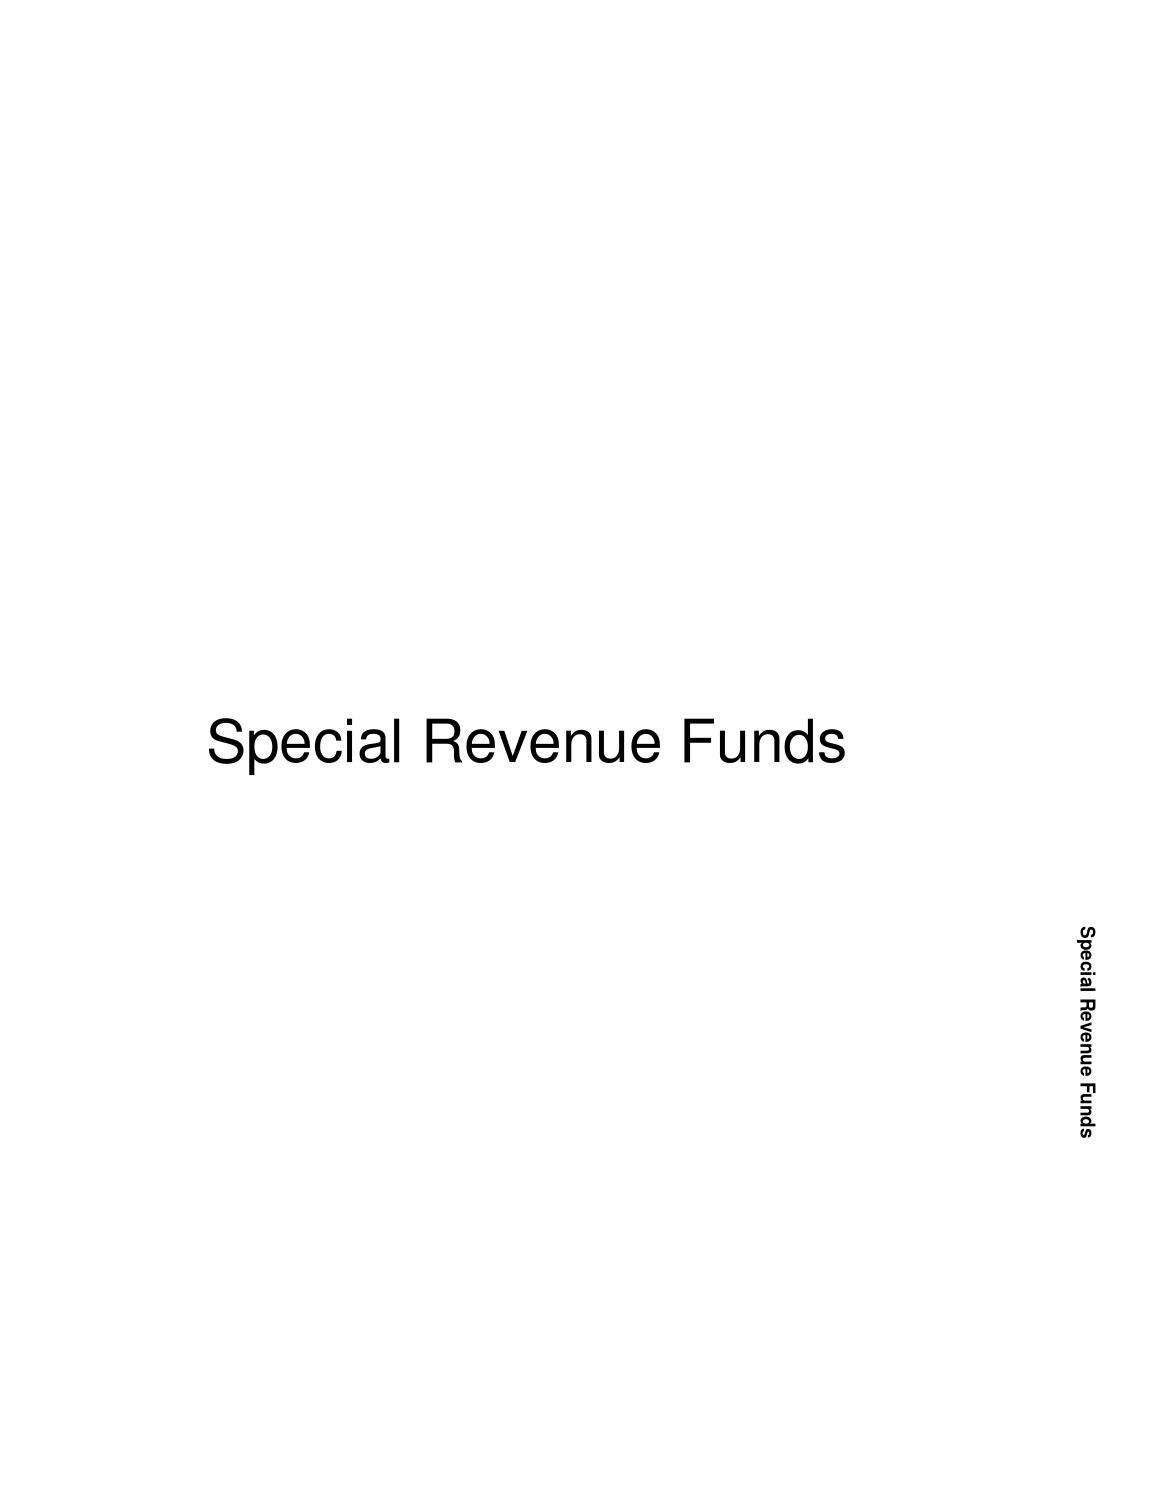 miramar2014 other funds budget by yenisey issuu